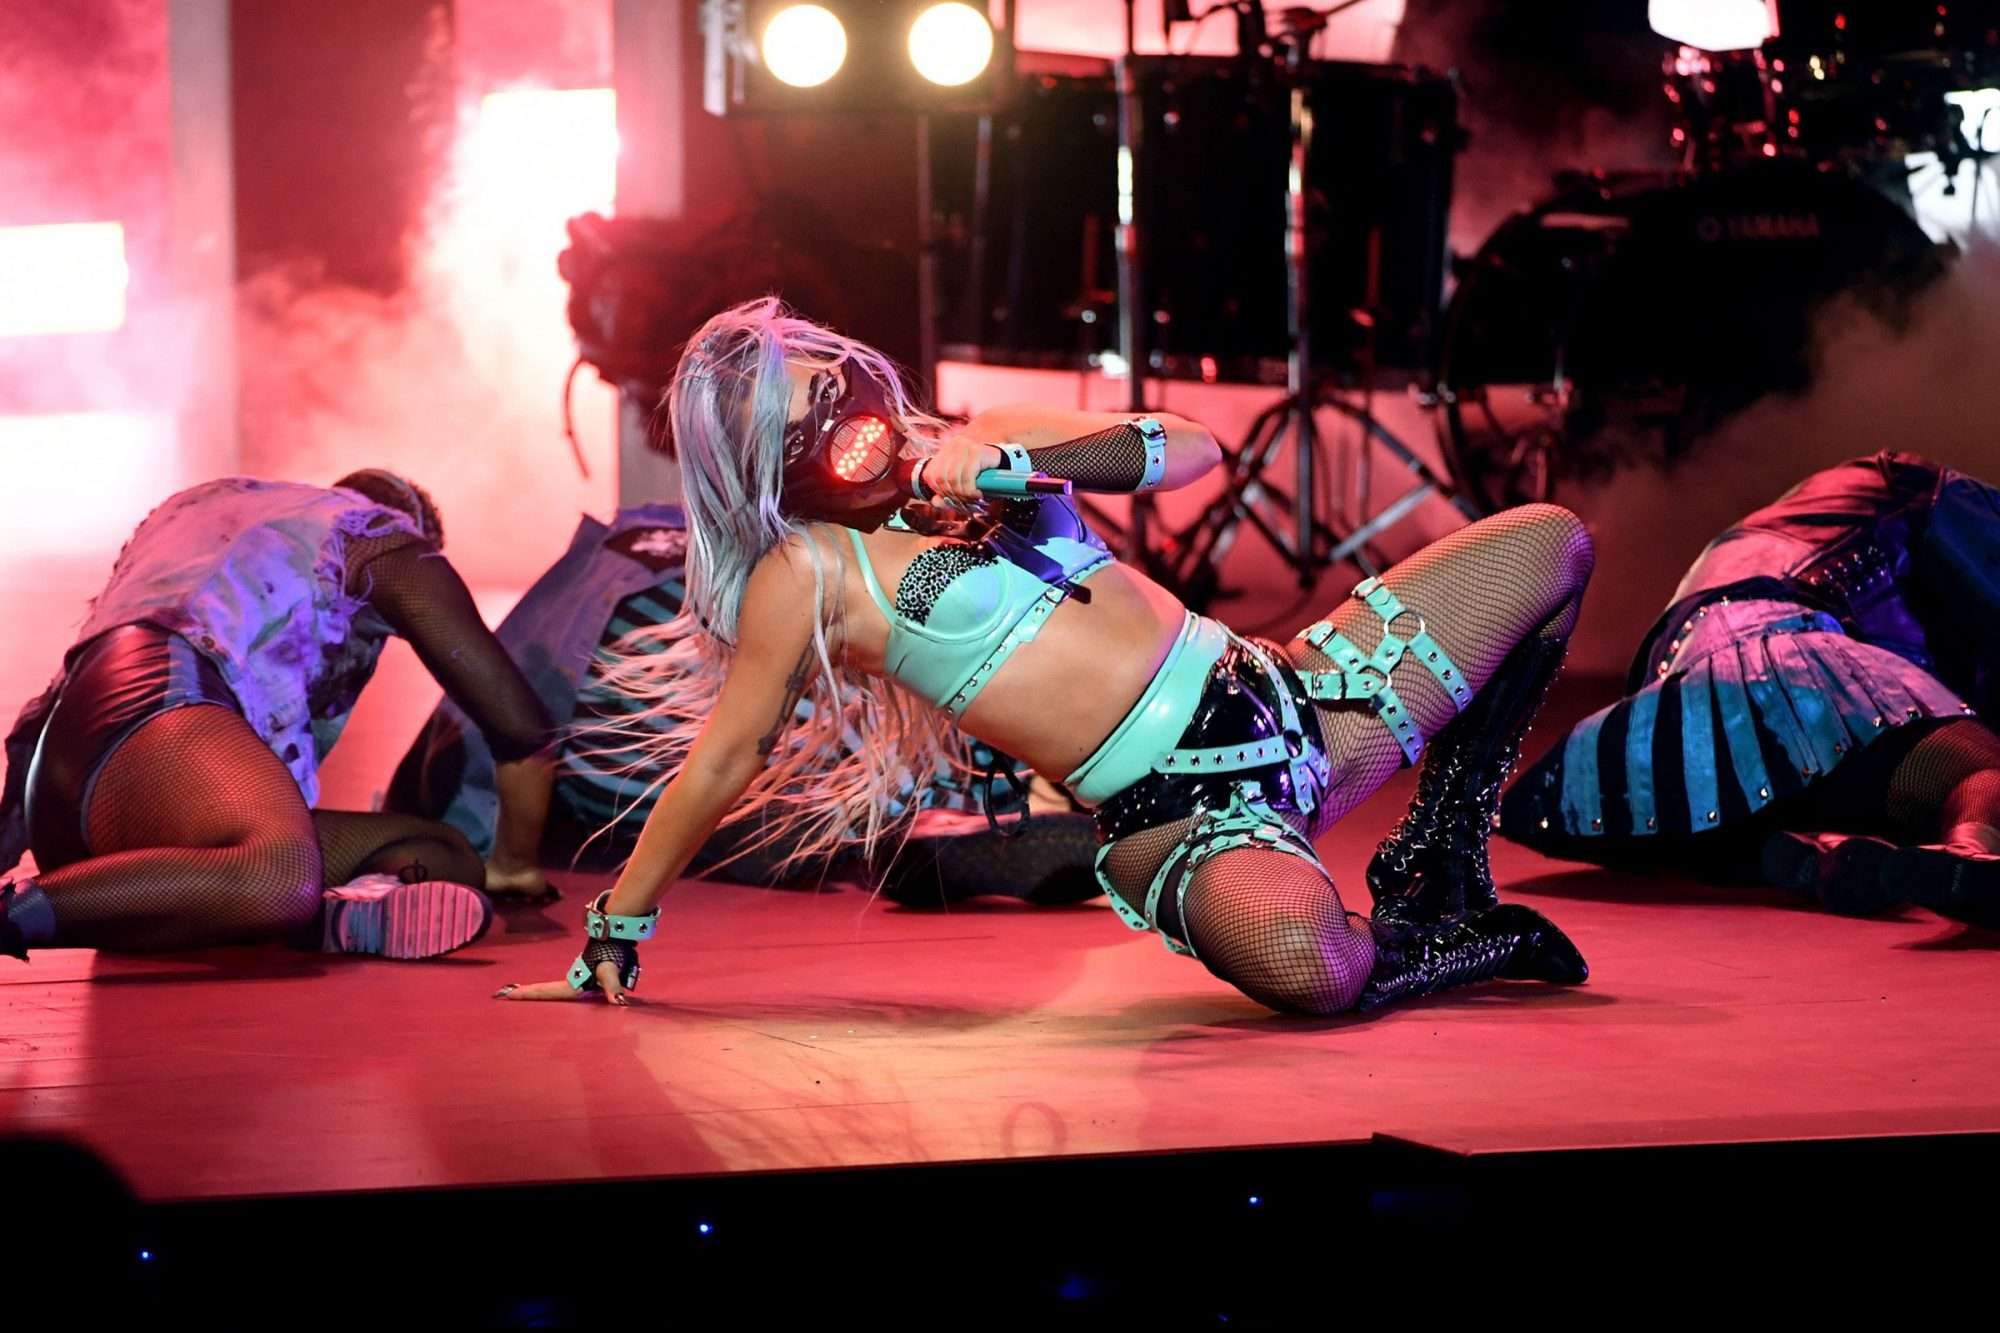 Lady Gaga performs during the 2020 MTV Video Music Awards, broadcast on Sunday, August 30th